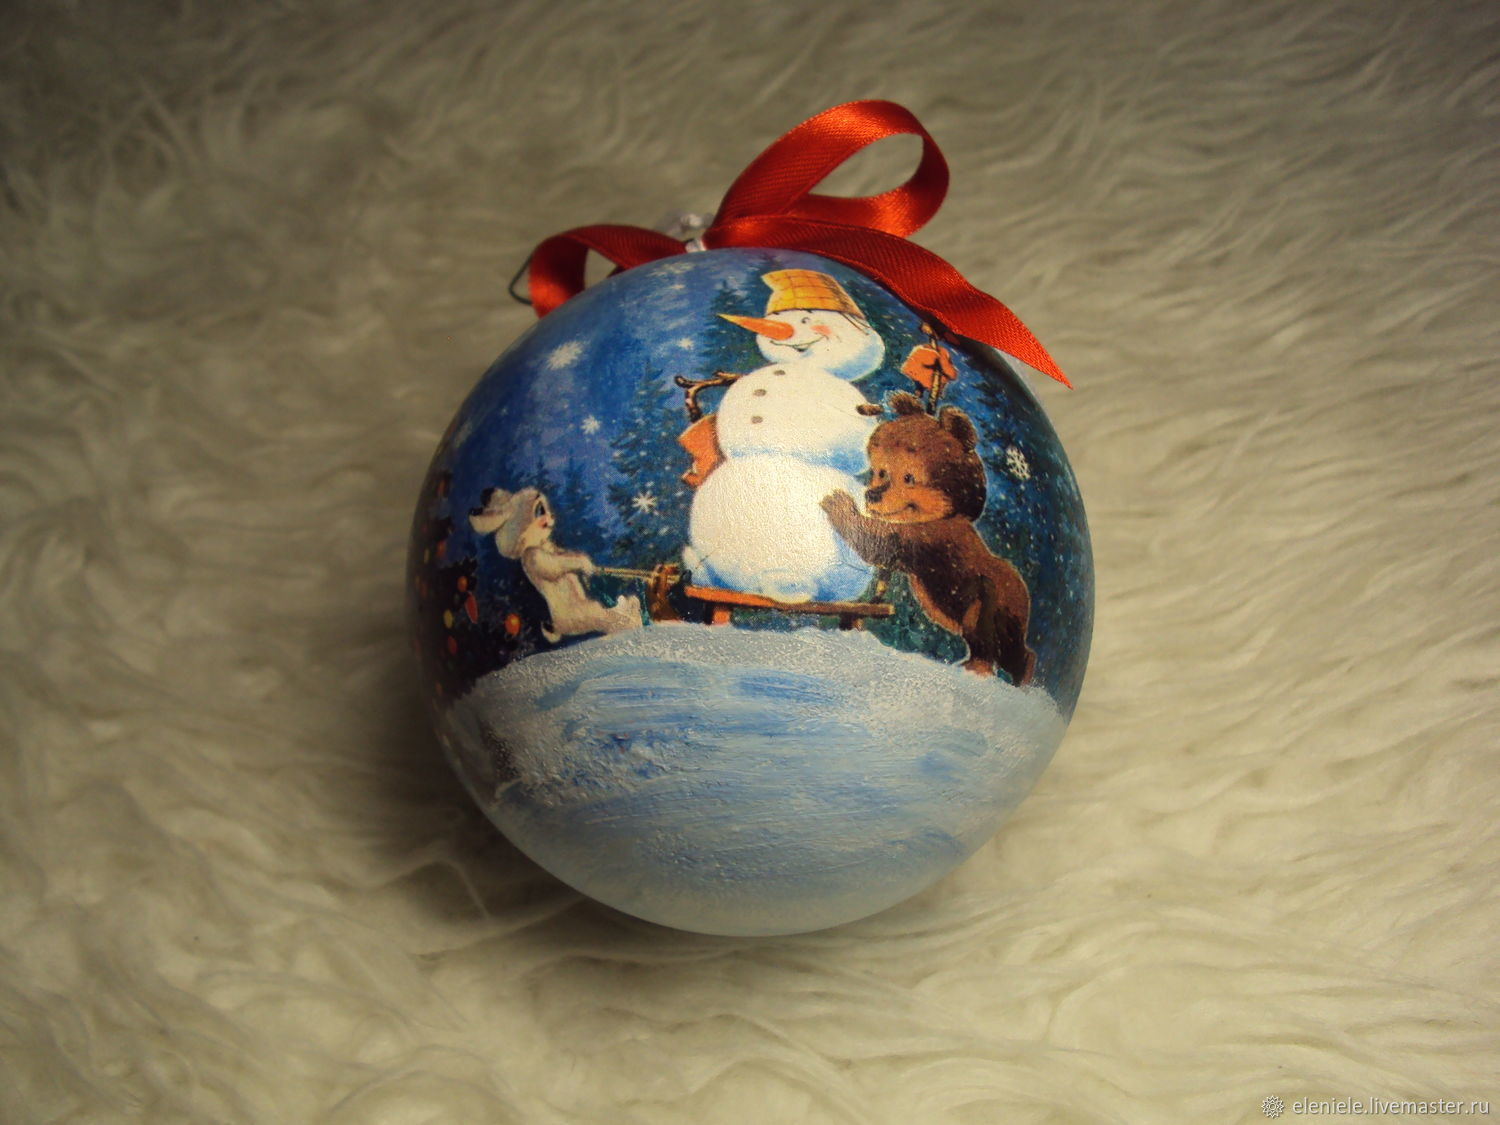 Ball 'Soviet card' decoupage logo, Christmas decorations, Moscow,  Фото №1